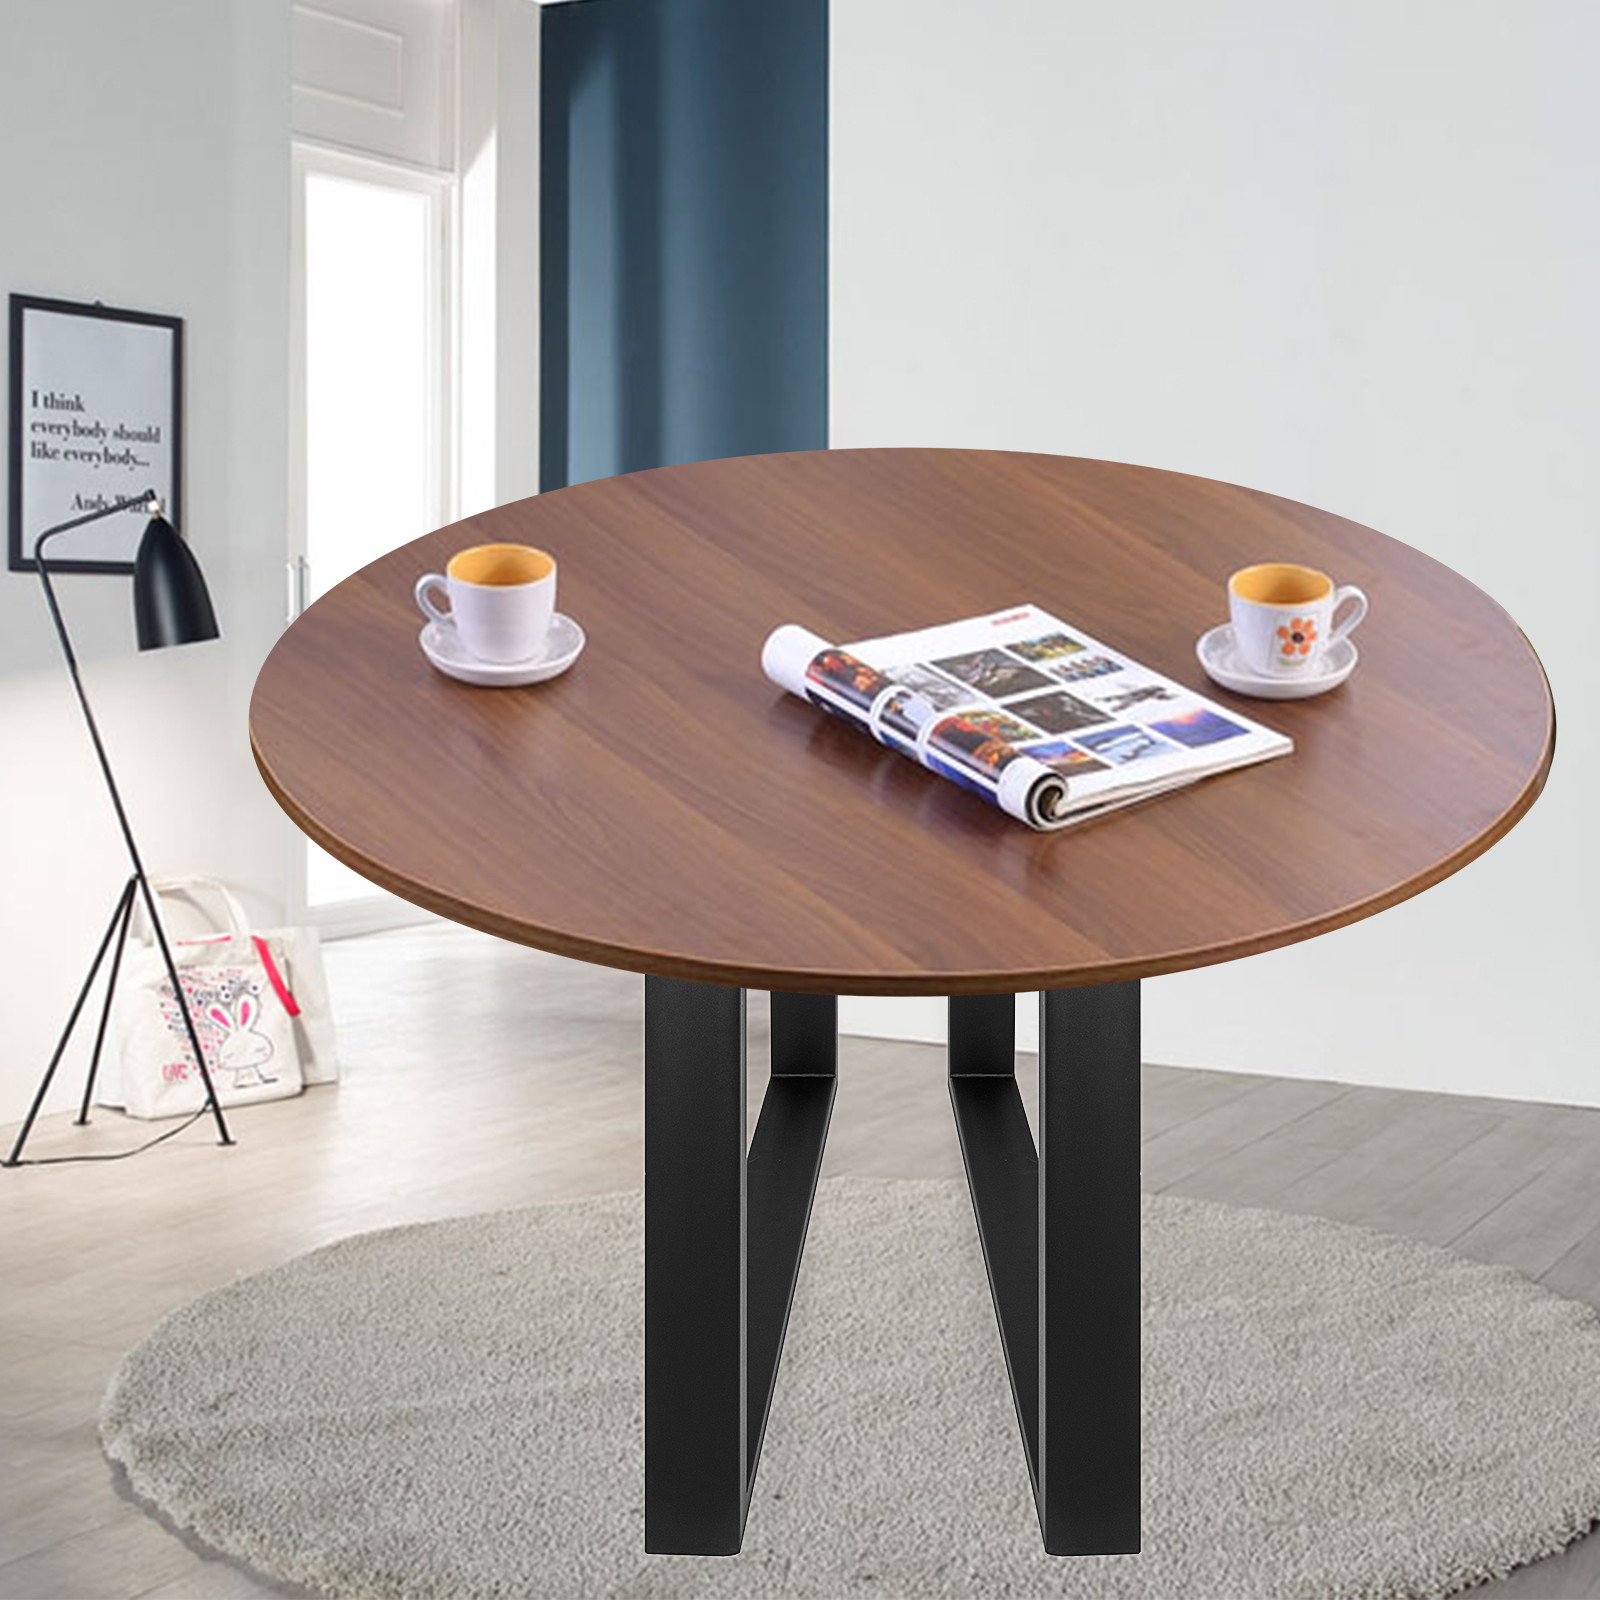 2X-Table-Legs-Black-Dining-Table-Leg-Heavy-Duty-Computer-Desk-Legs-Rectangle thumbnail 58